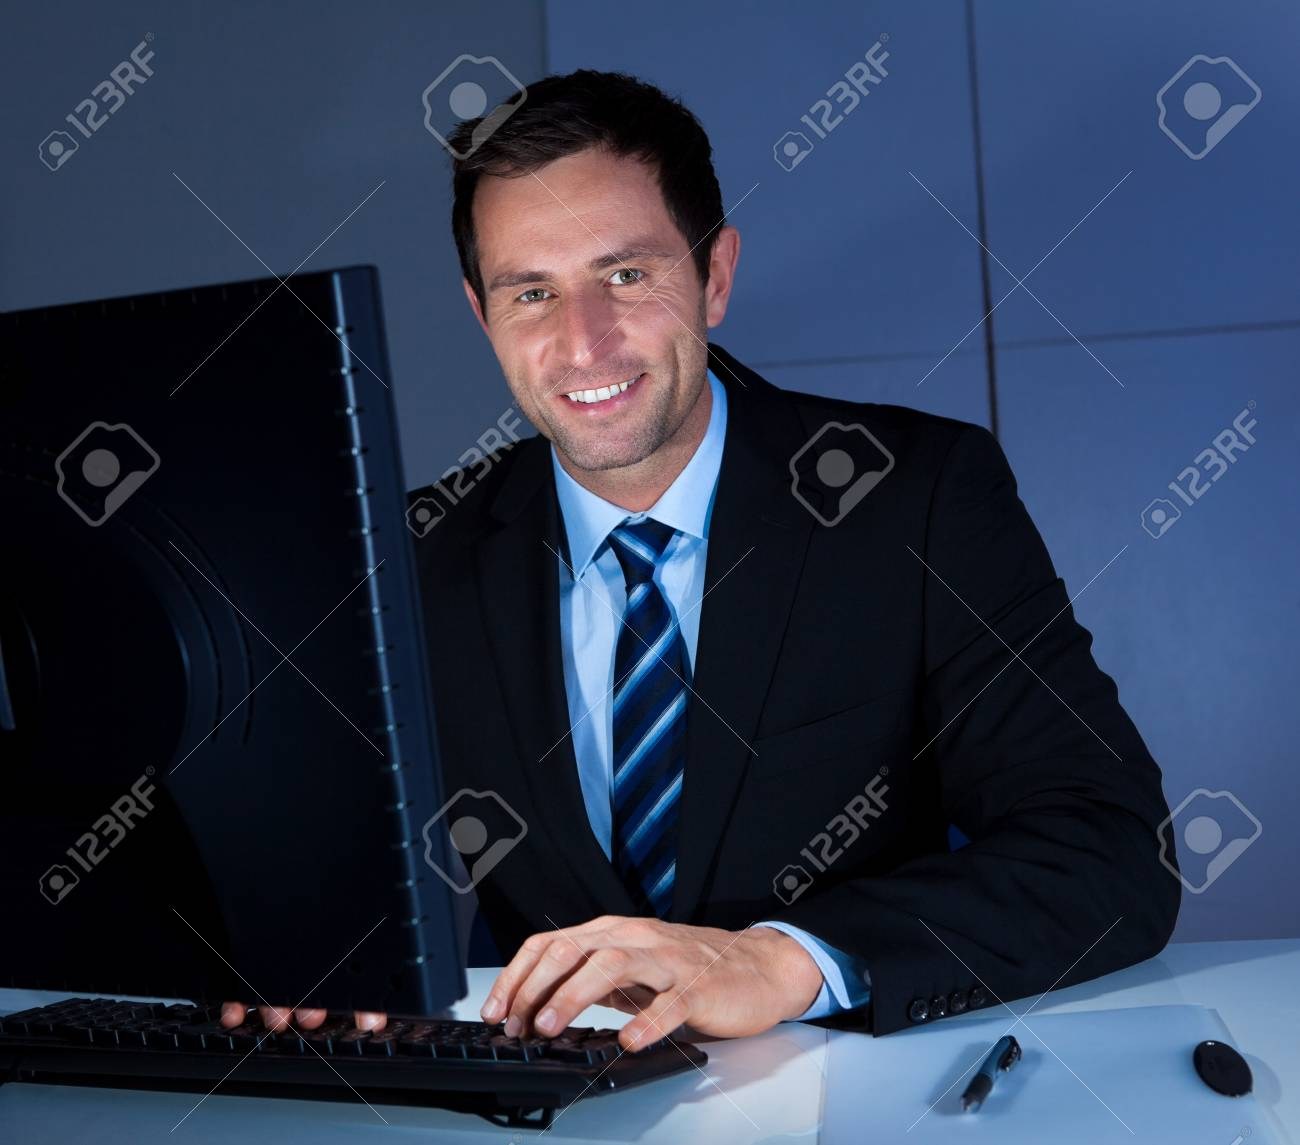 Portrait Of Happy Businessman Using Computer At Workplace Stock Photo - 15404161